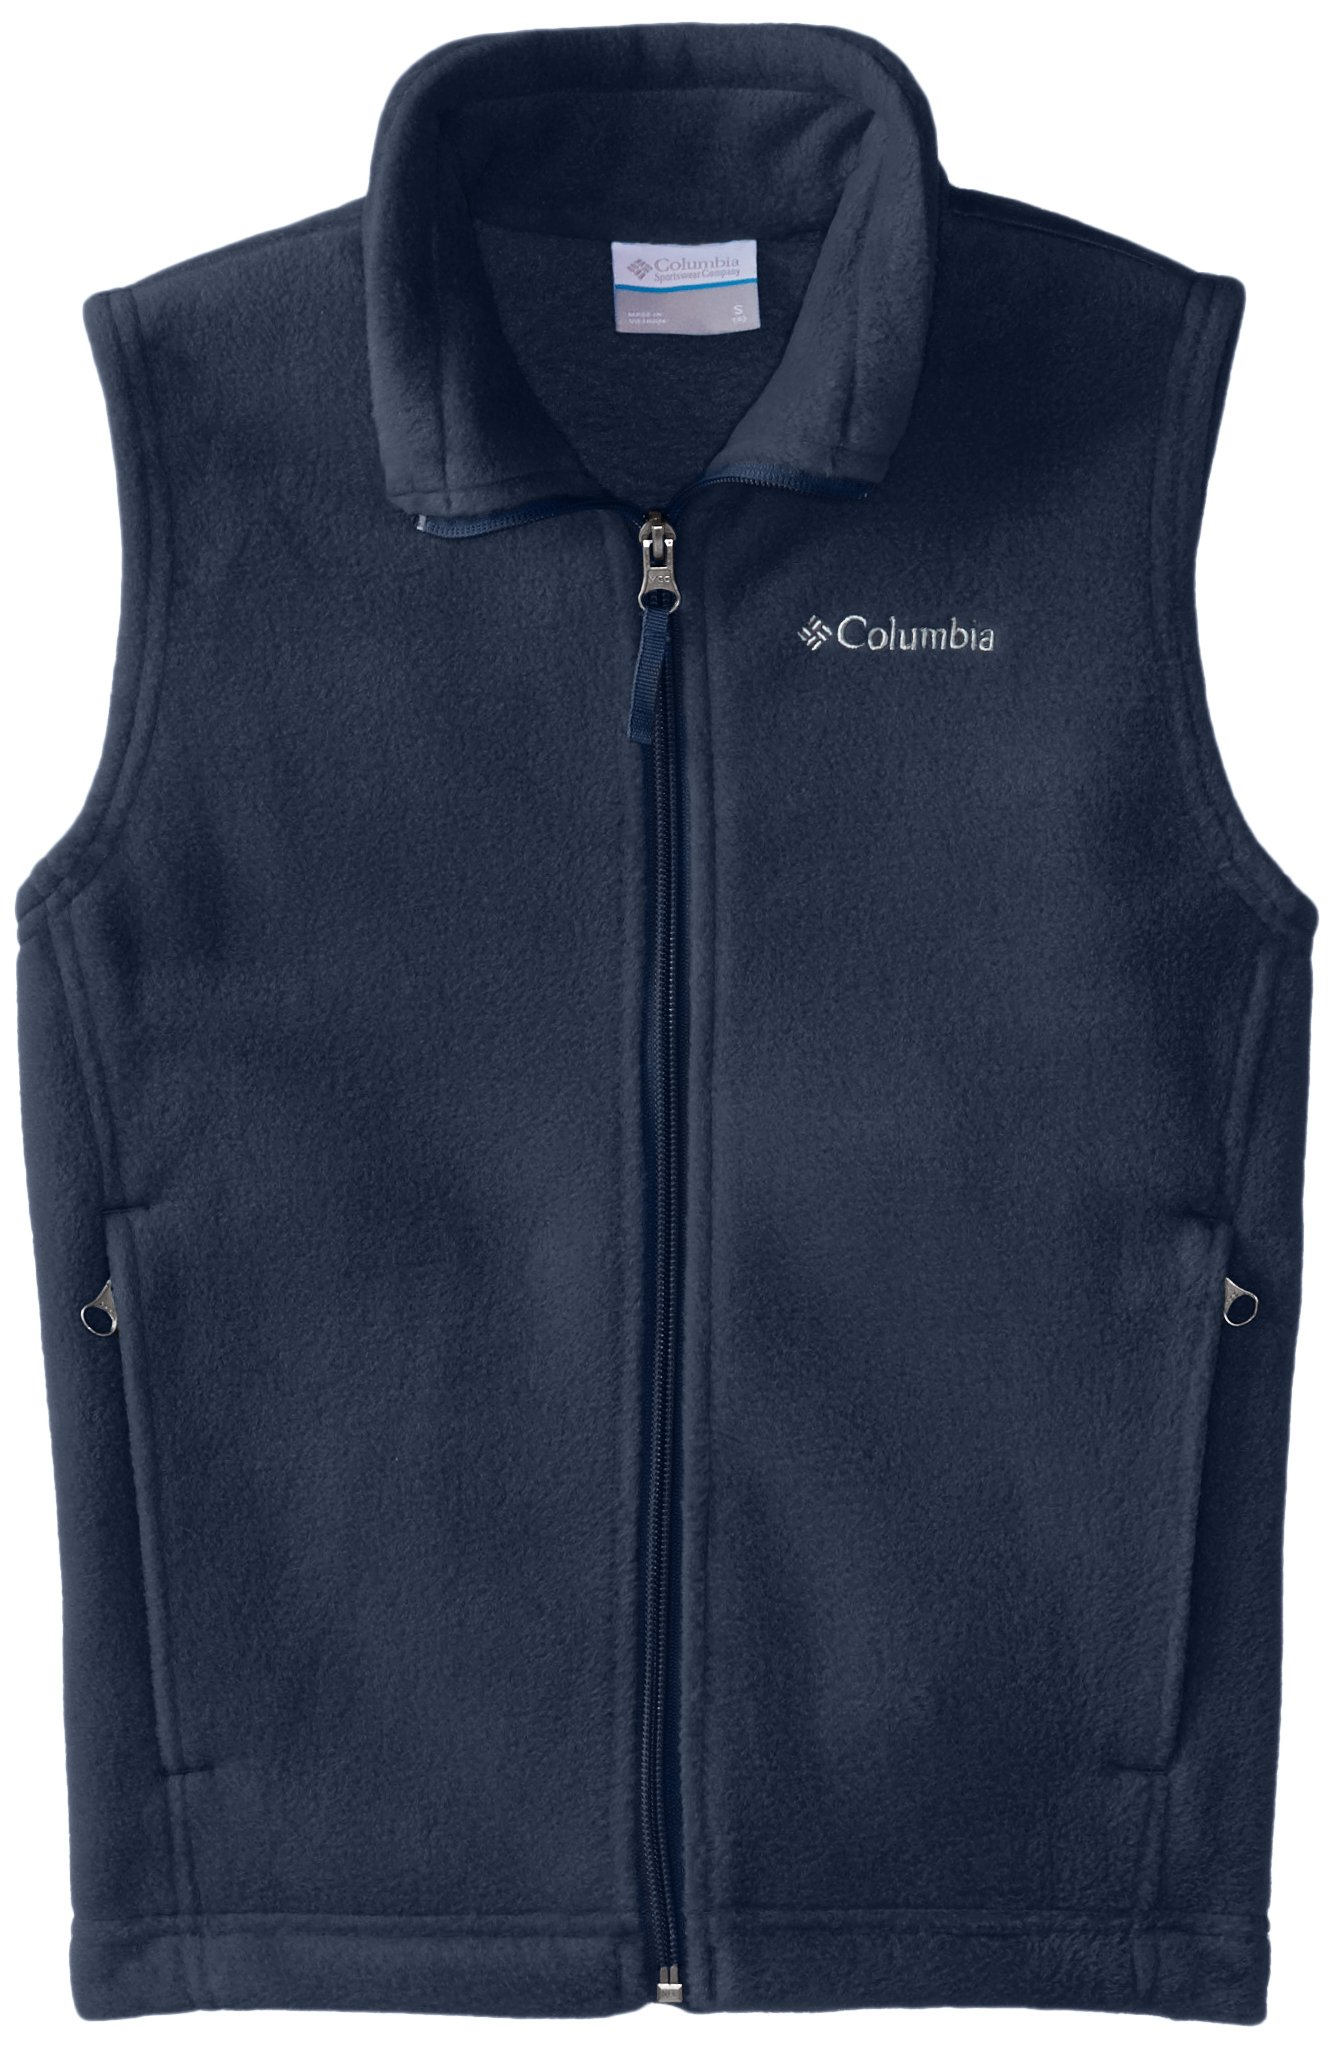 Columbia Big Boys' Steens Mountain Fleece Vest, Collegiate Navy, Large